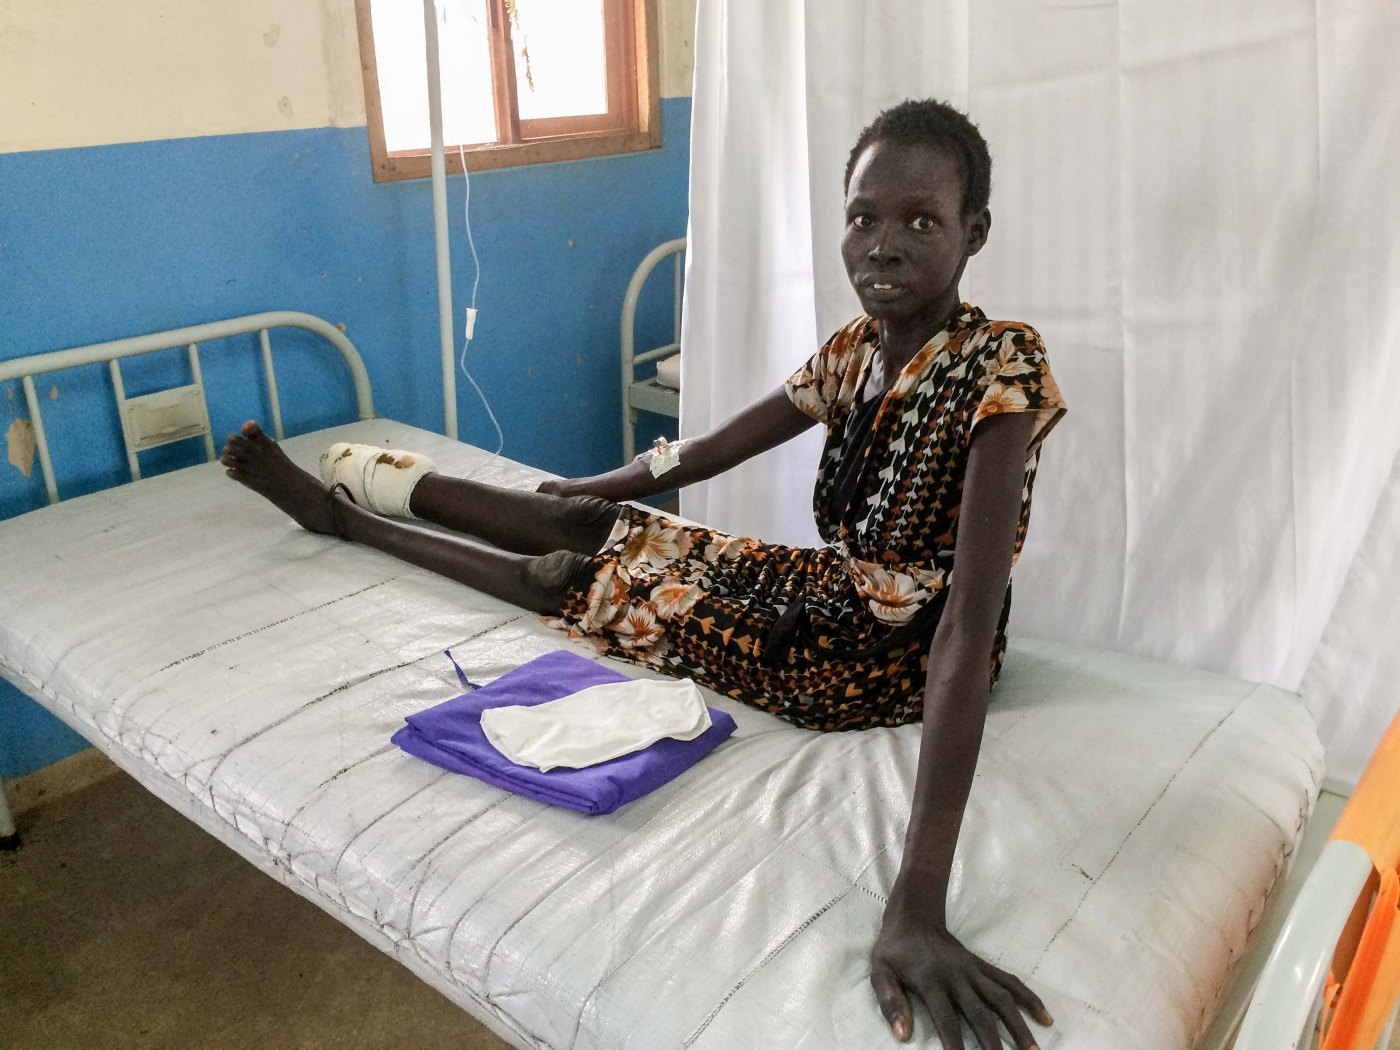 A patient who lost her foot and lower leg due to a snakebite that was not treated on time awaits surgery at the MSF hospital in Agok.